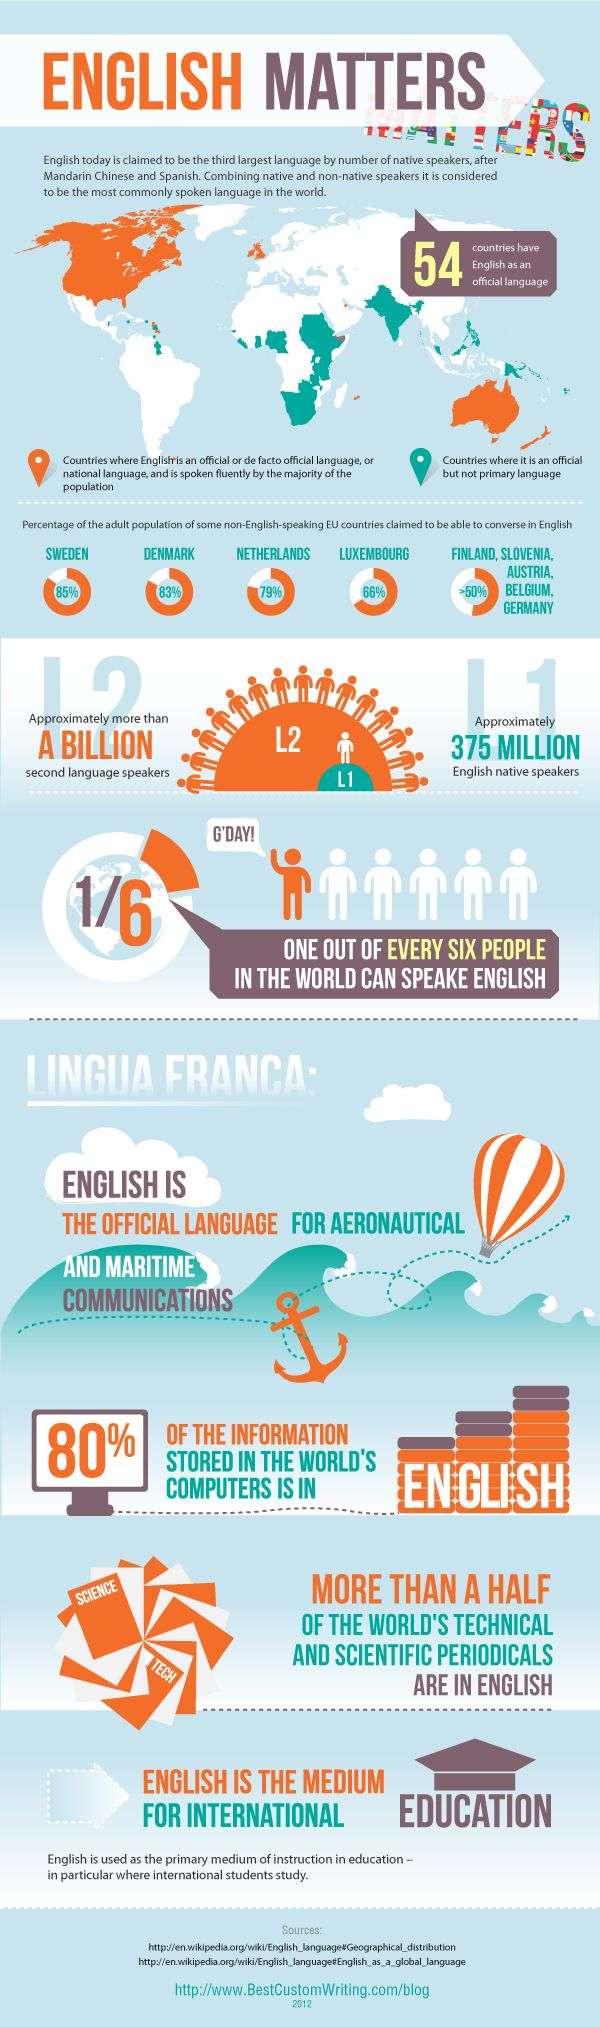 English language has become a global means of communication, it is not only the most widely written (counting scientific articles, periodical and the impressing fact that it is a common language of the Internet), it's also spoken throughout different international conversations, no matter whether they are official or business meetings, or just a casual skype talk.